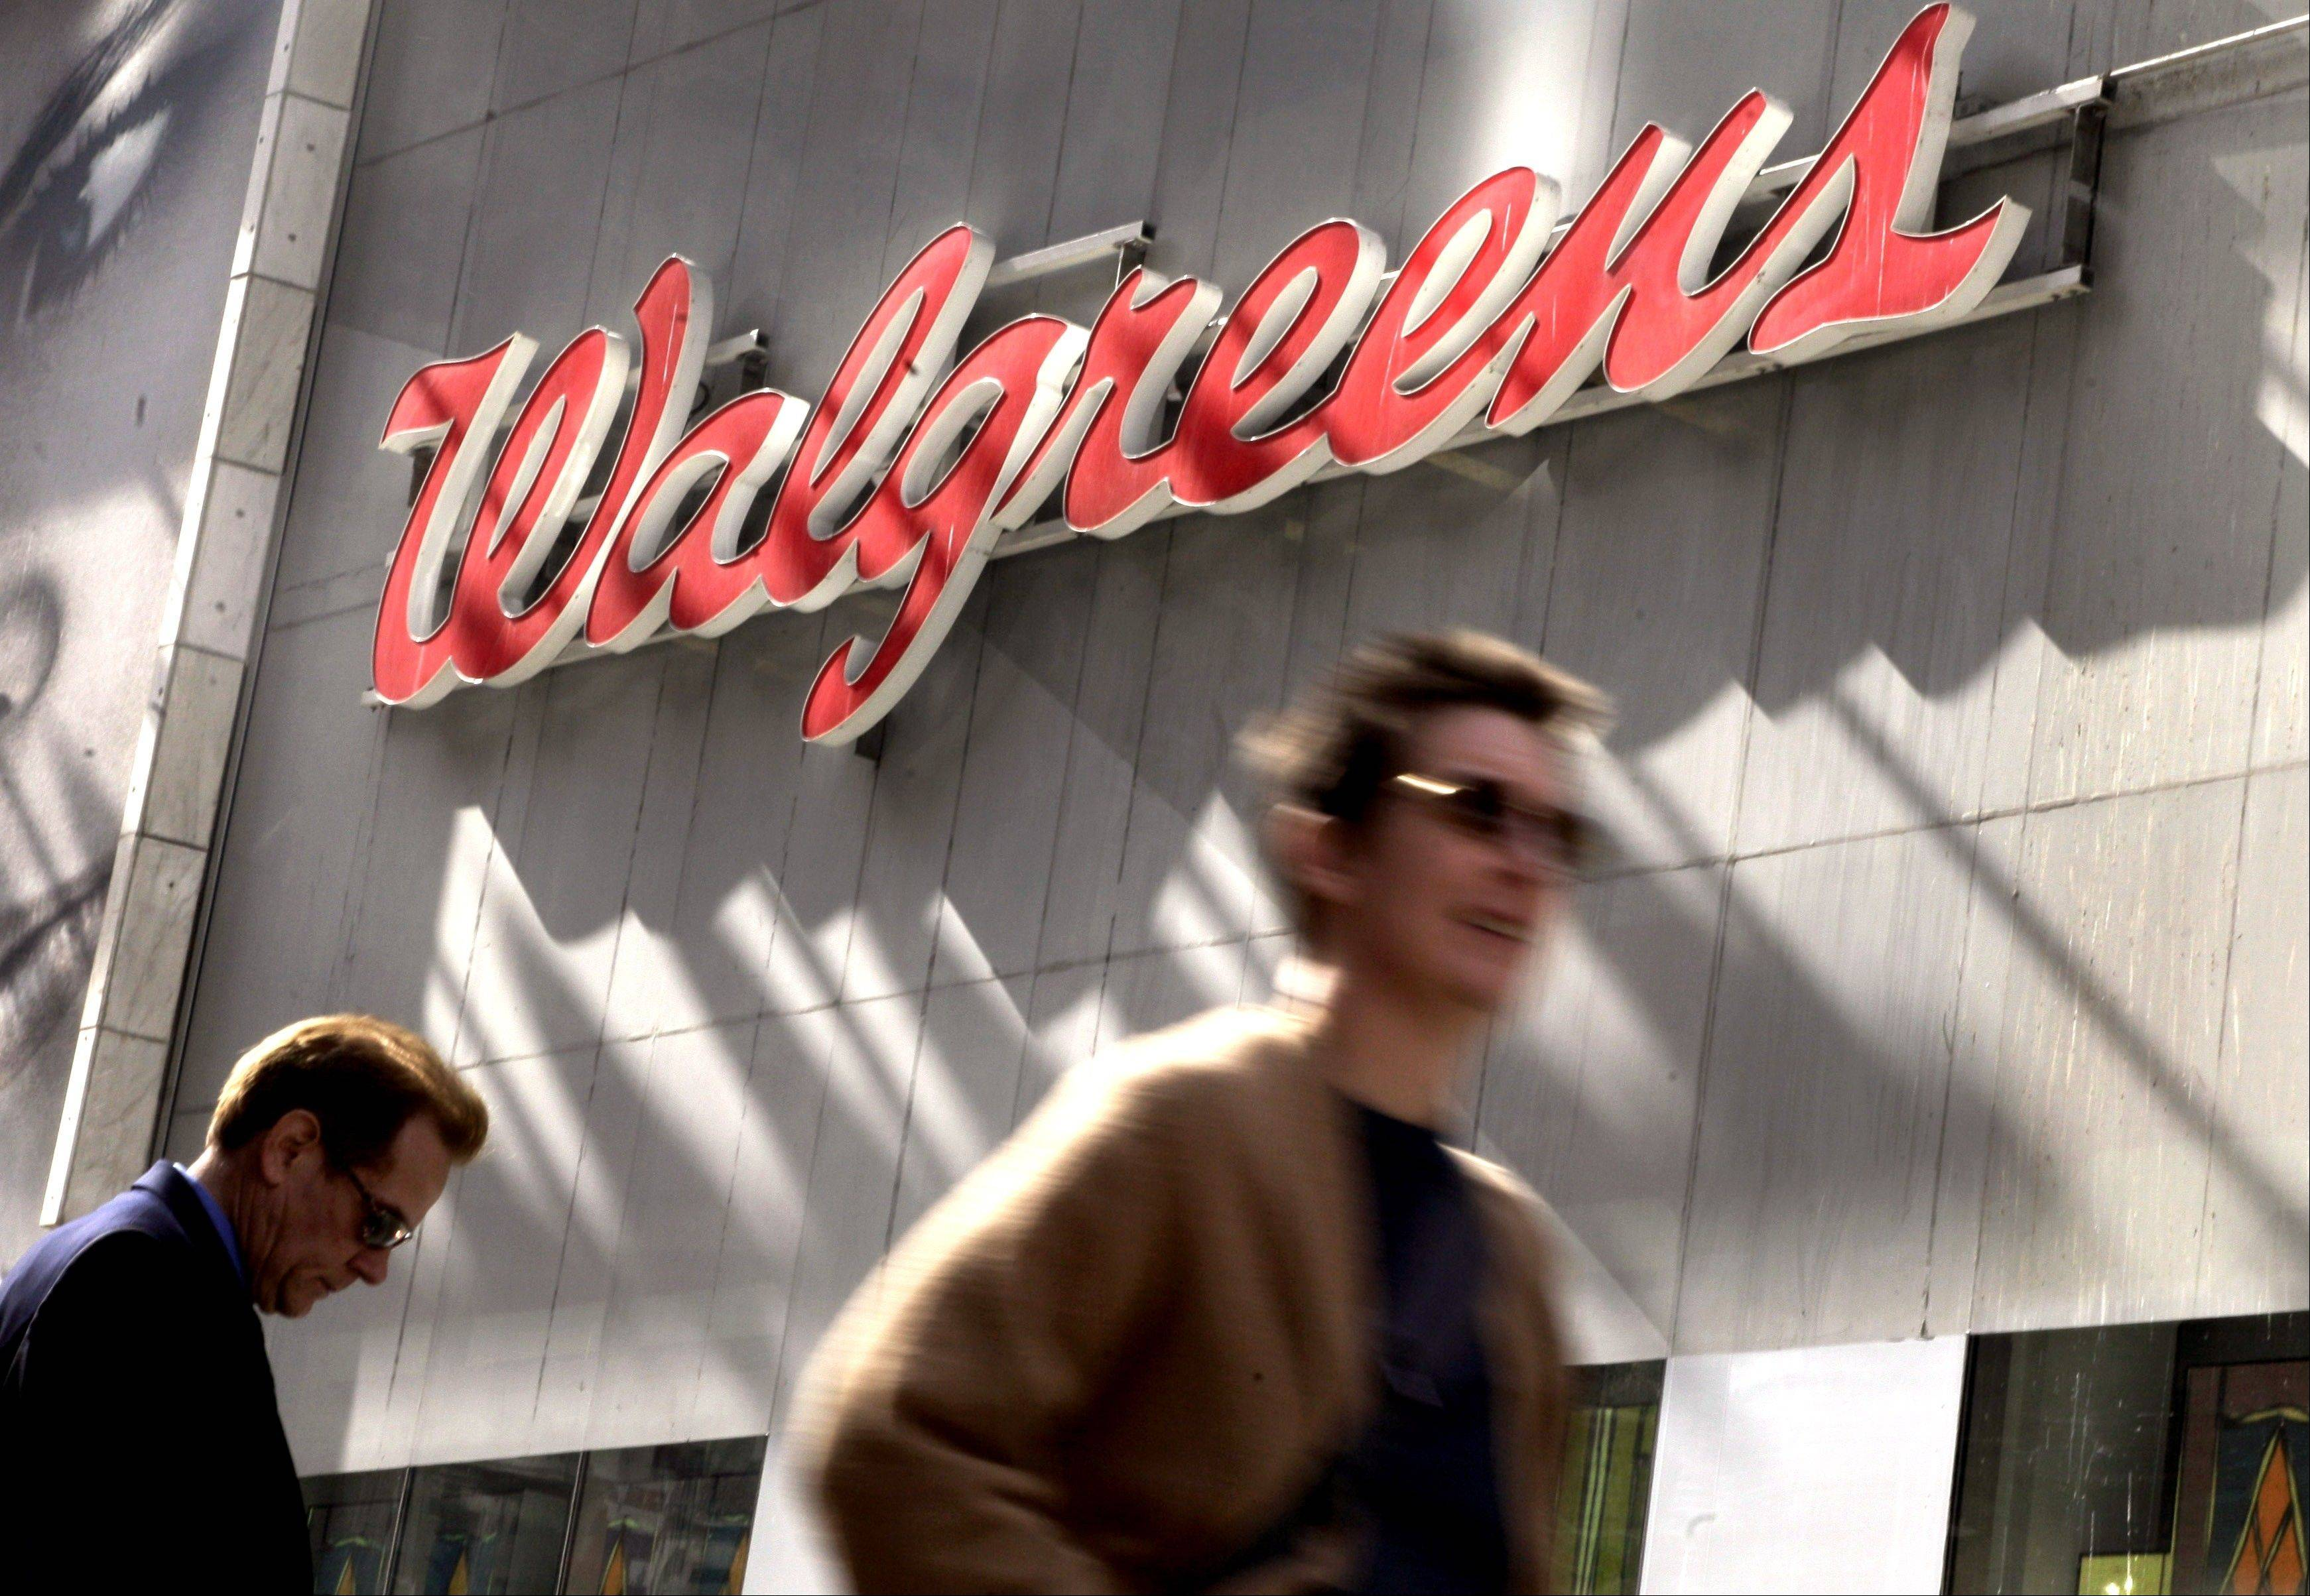 Deerfield-based Walgreen Co. brought in more revenue from established stores than Wall Street expected last month, as the nation's largest drugstore chain saw an increase in business due to the flu and its repaired relationship with pharmacy benefits manager Express Scripts Holding Co.